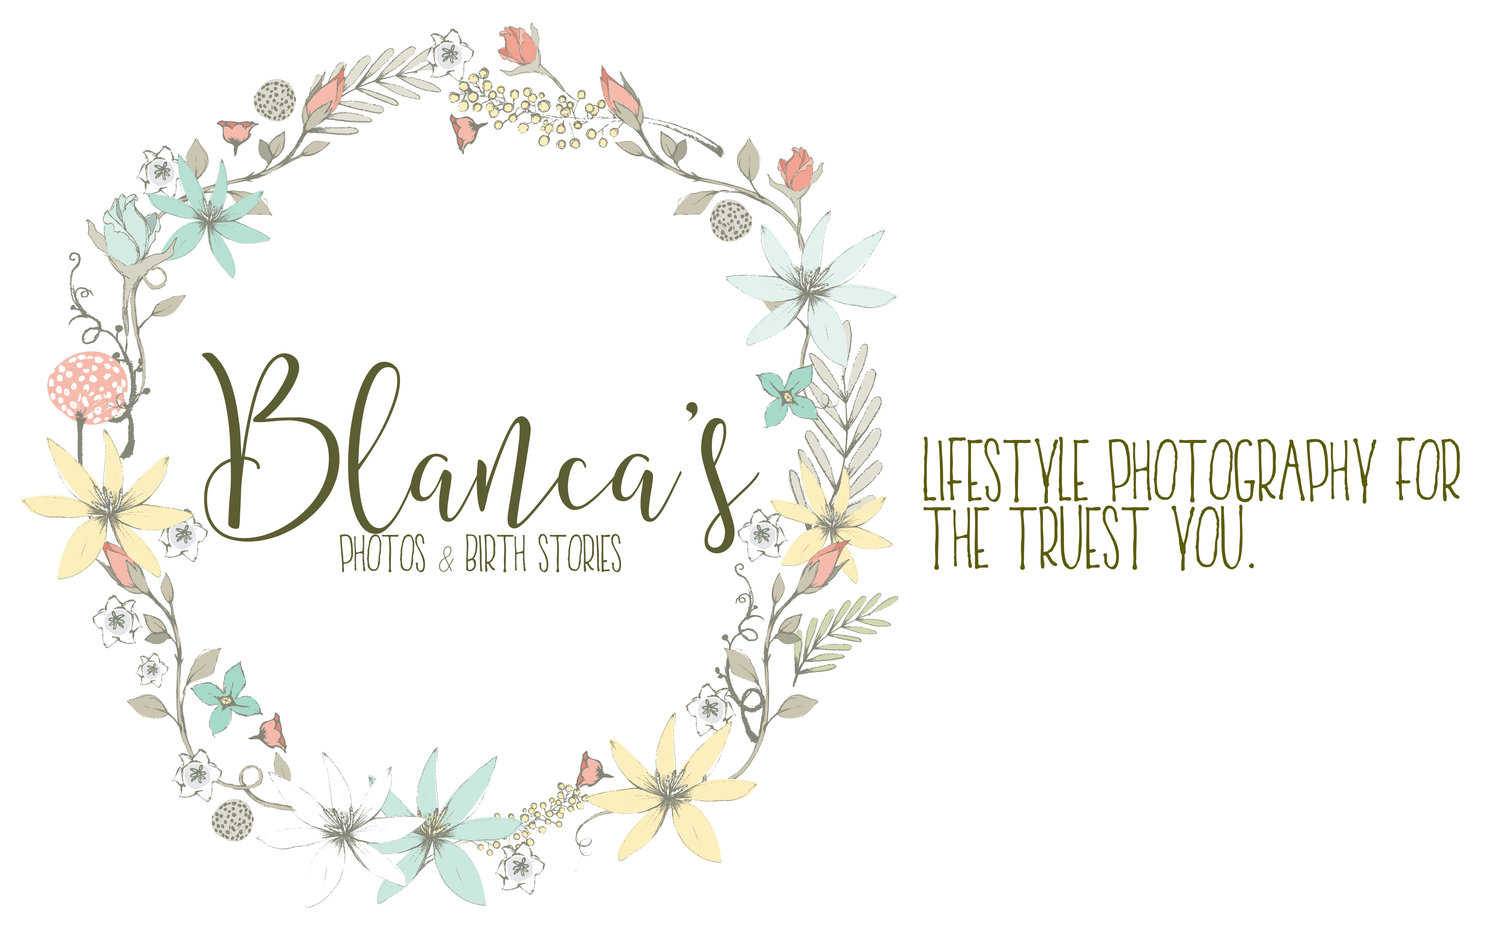 Blanca's Photos & Birth Stories, Lifestyle Photography, Photographer, El Paso, Texas